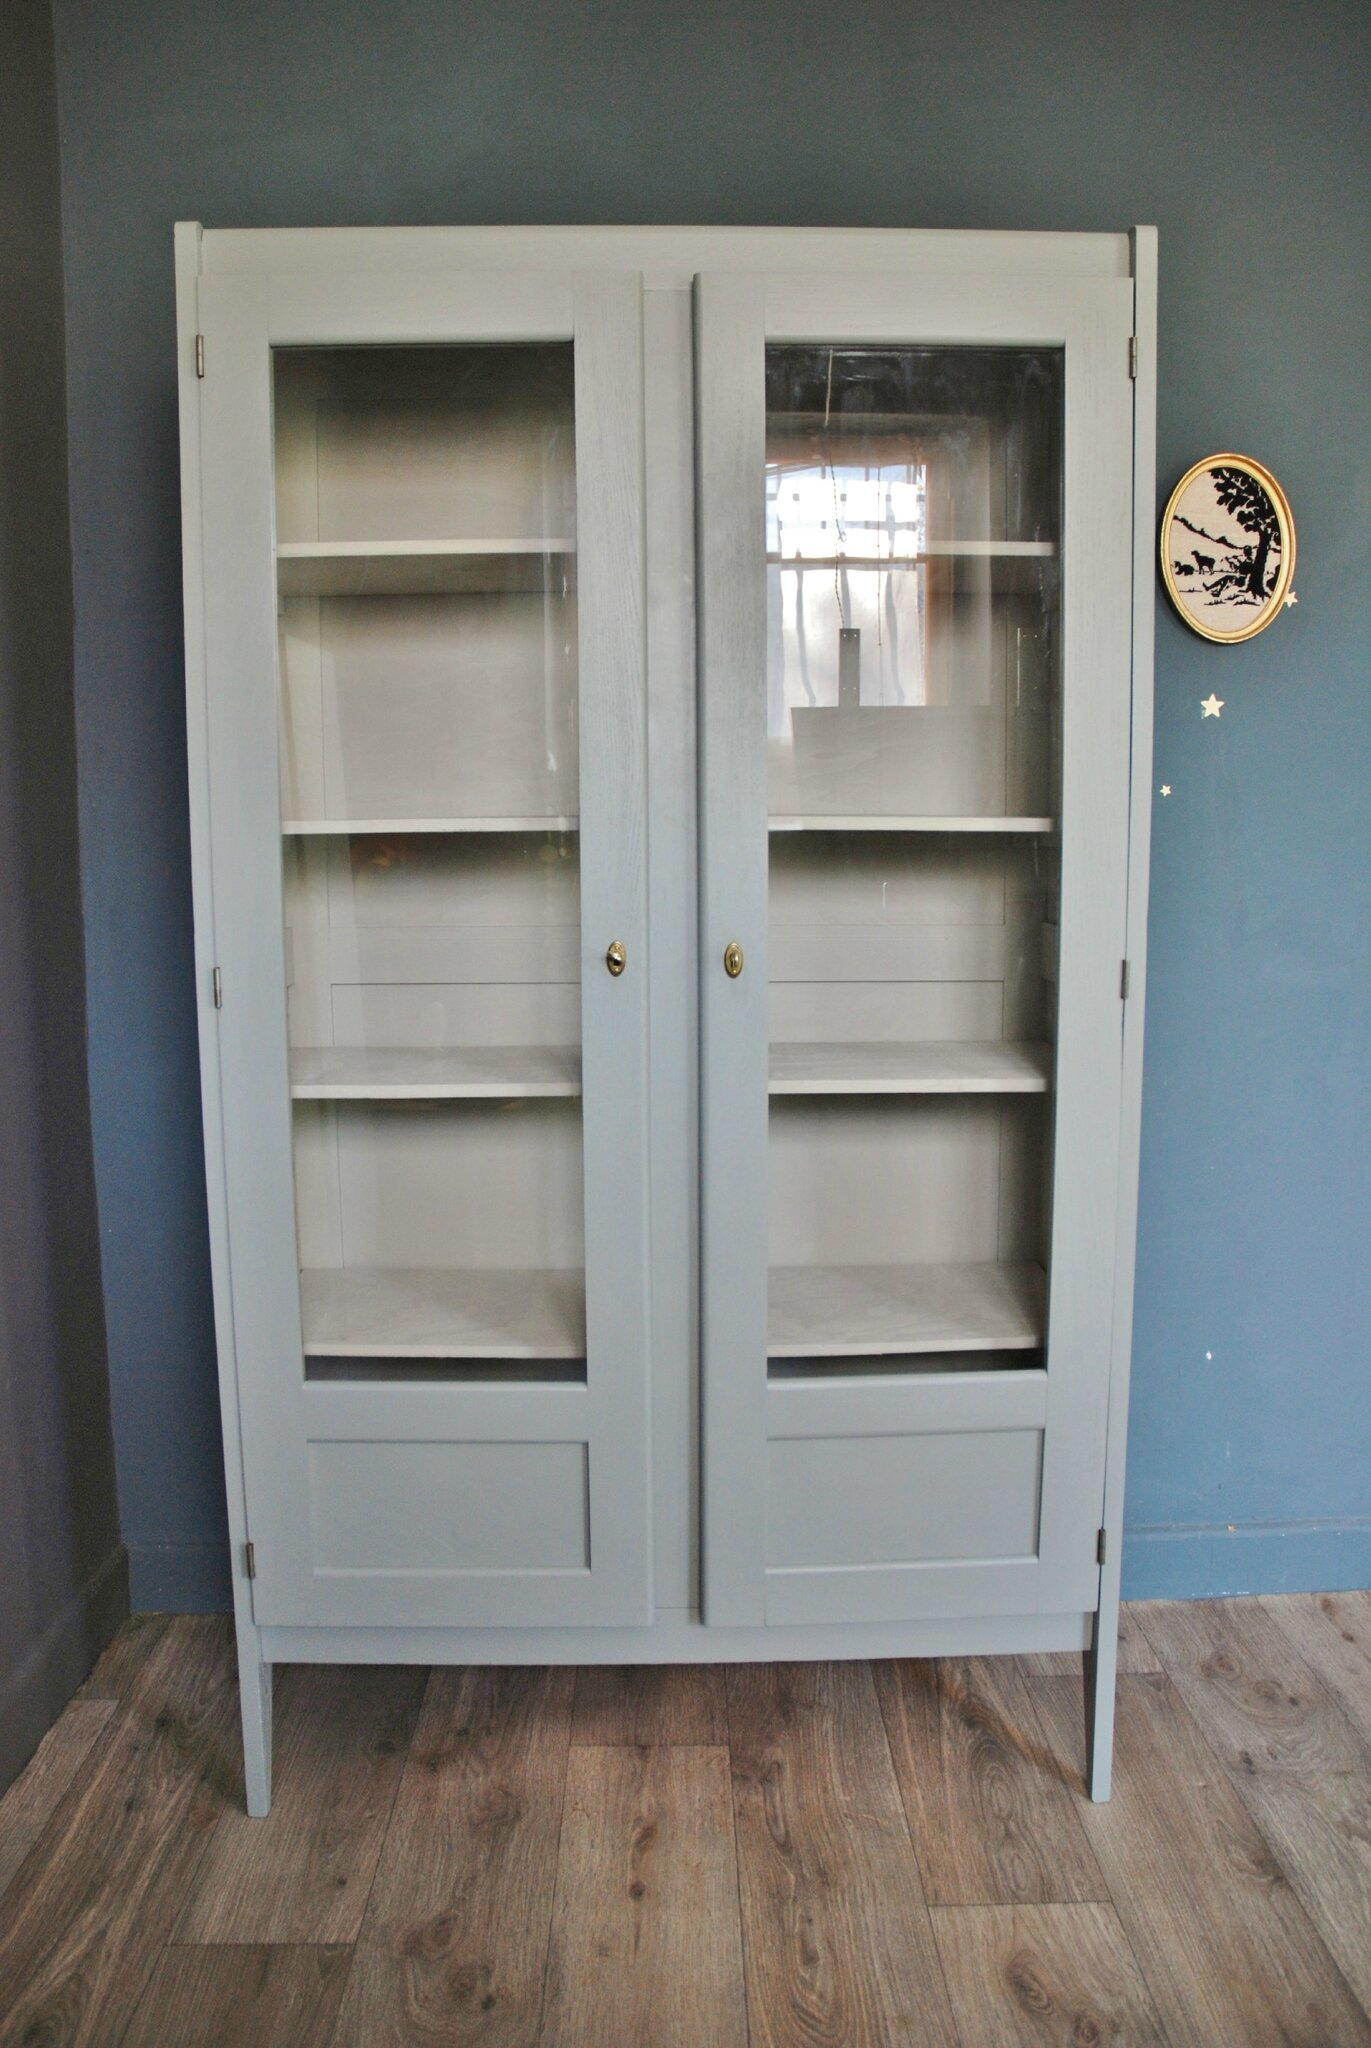 ancienne armoire vitr e gris bleu vendue atelier vintage. Black Bedroom Furniture Sets. Home Design Ideas